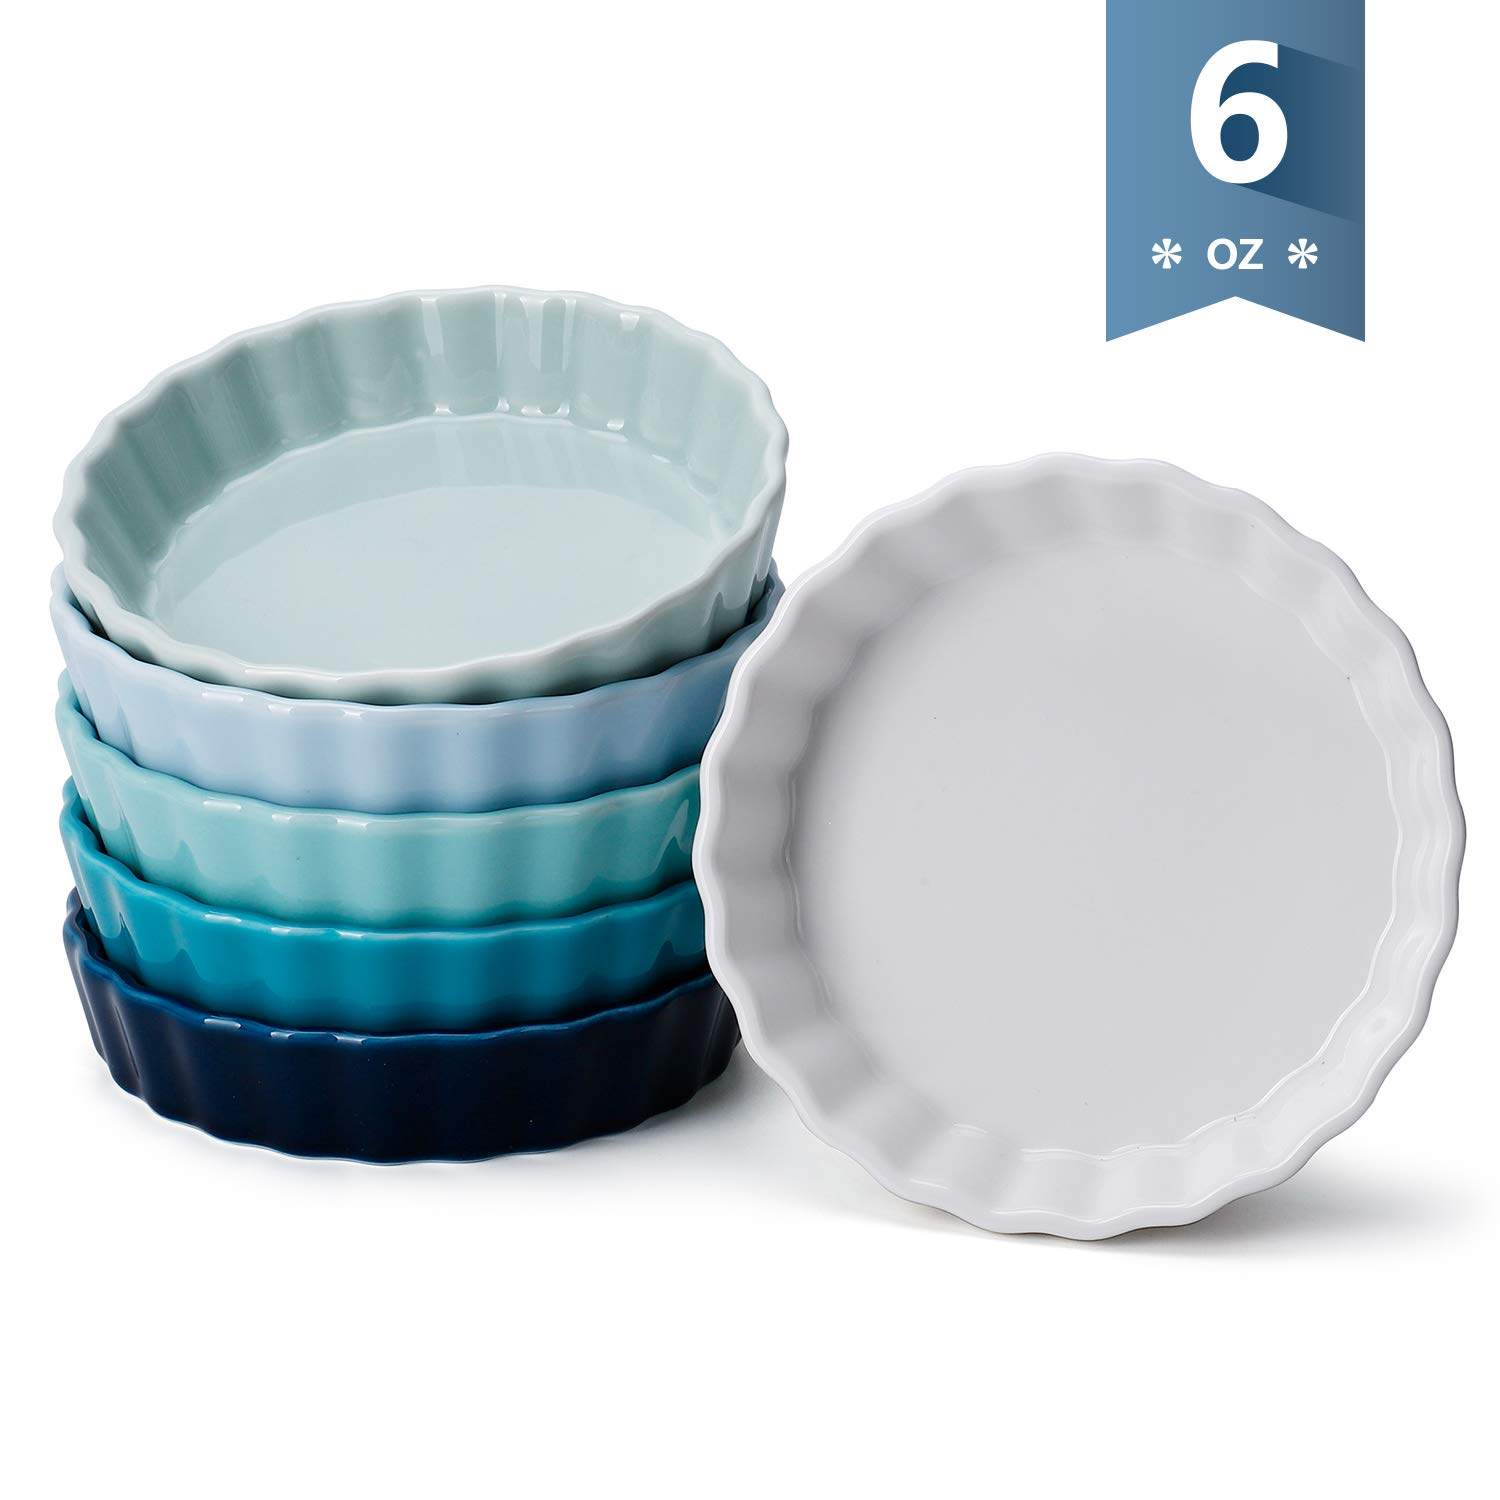 Sweese 509.003 Porcelain Round Ramekins for Baking, 6 Ounce Creme Brulee Dish, Set of 6, Cool Assorted Color by Sweese